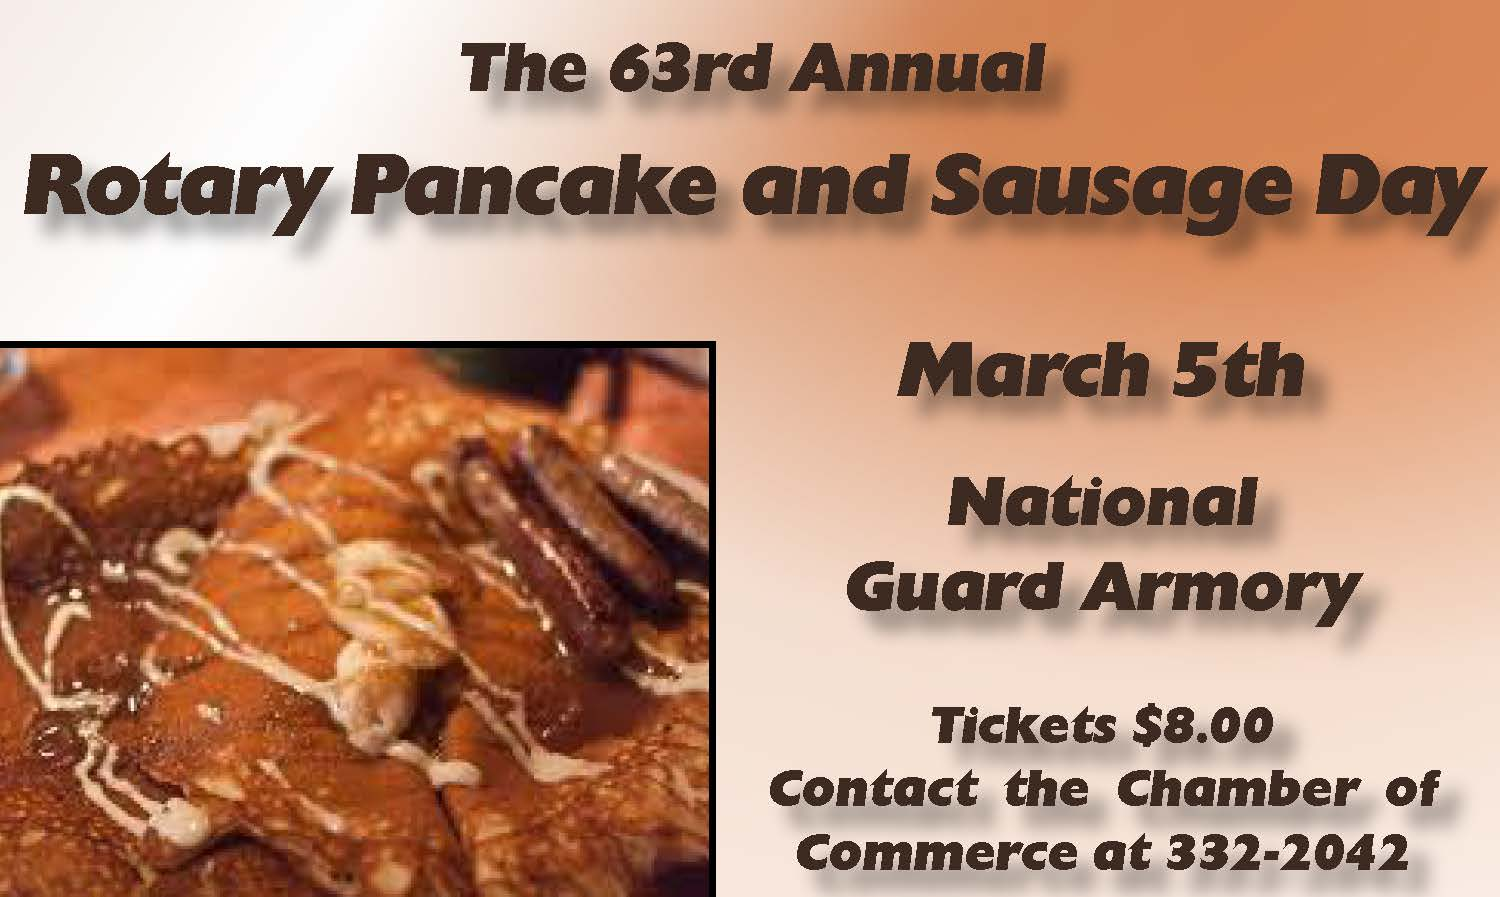 Rotary Pancake and Sausage Day! March 5th!